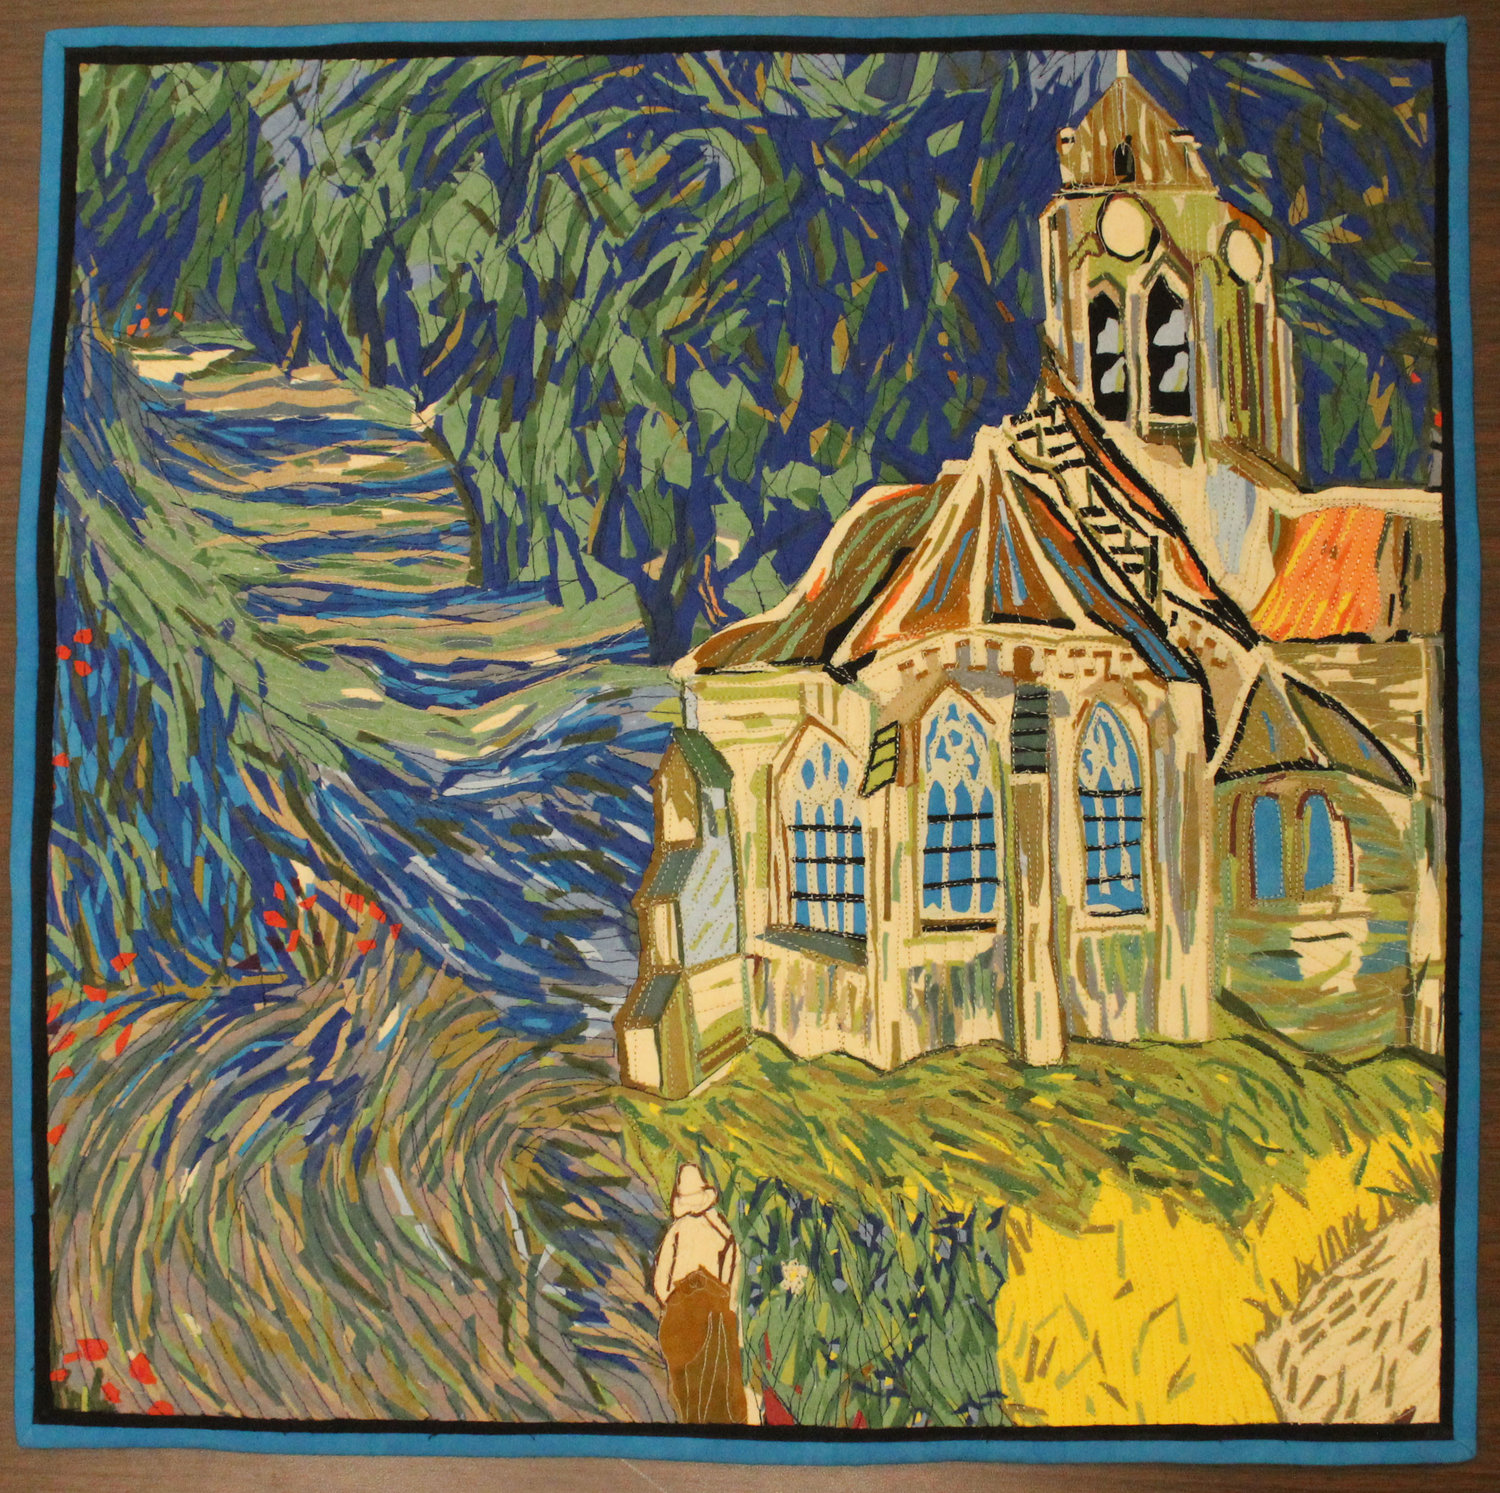 "SANDRA PRESLEY'S ""Van Gogh Piece"" is a square quilt made during a competition in which she could only use a certain set of provided fabrics. She explained that she combined several paintings by the famous artist to create this quilt."